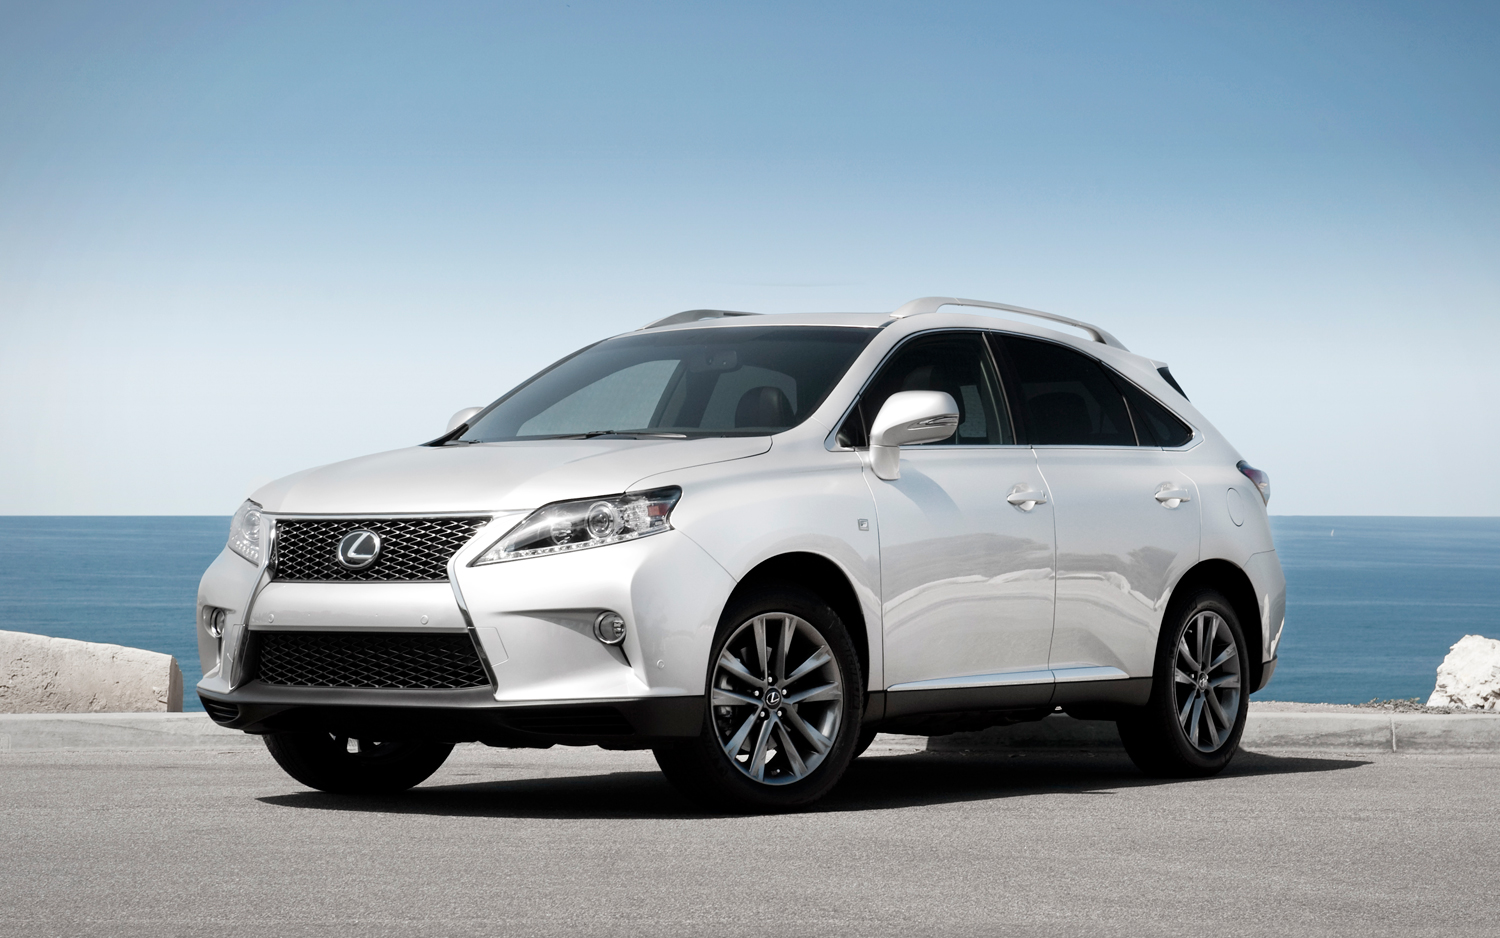 Lexus Rx 400h 2006 Repair Manuals Download Wiring Diagram Rx400h 63 Pdf For Free Ar Manual Rh Carpdfmanual Com